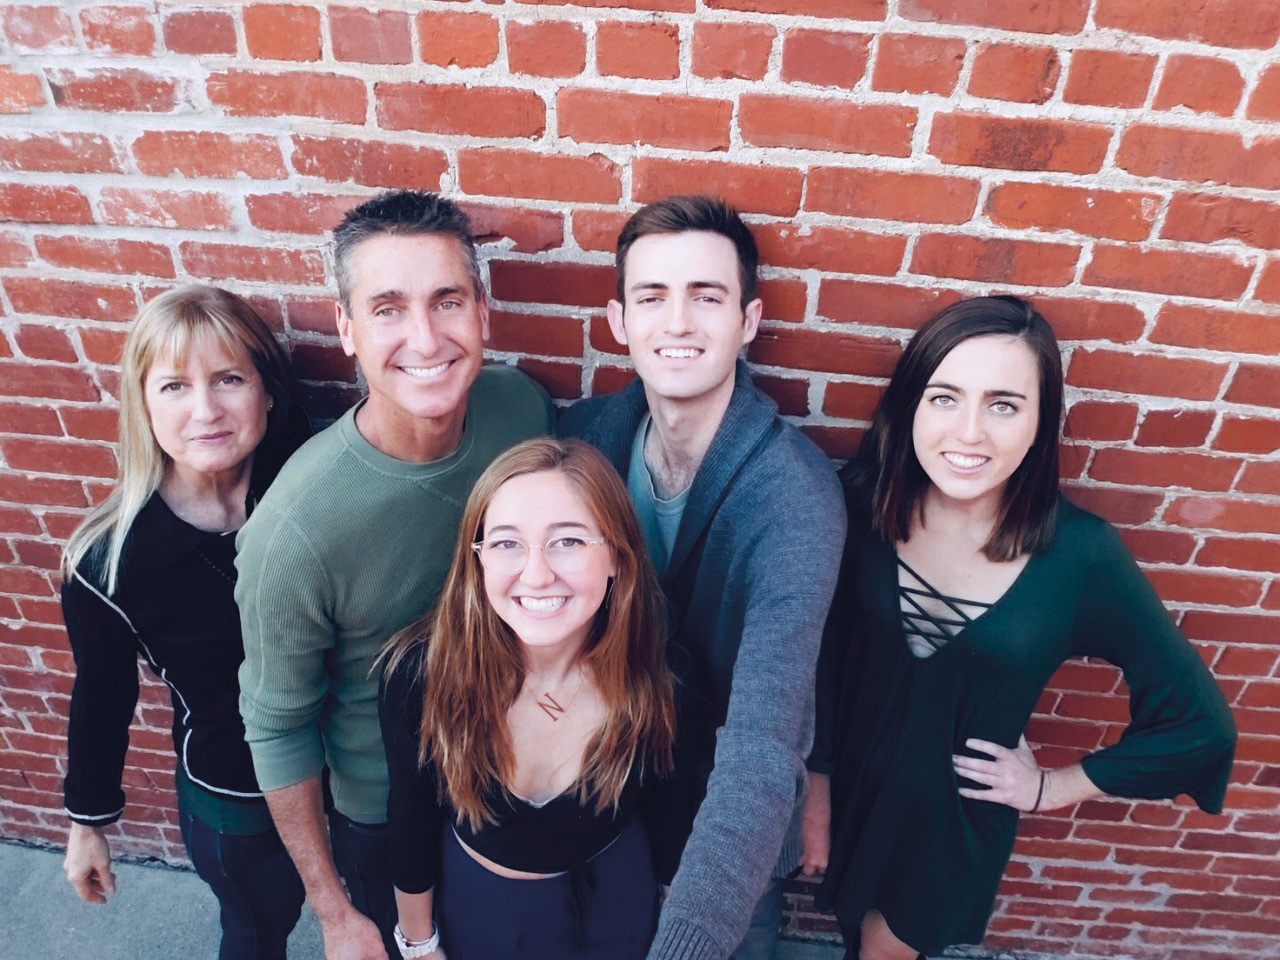 Lorna Mack Sheridan '83 with her husband, Barry, their son, and two daughters.